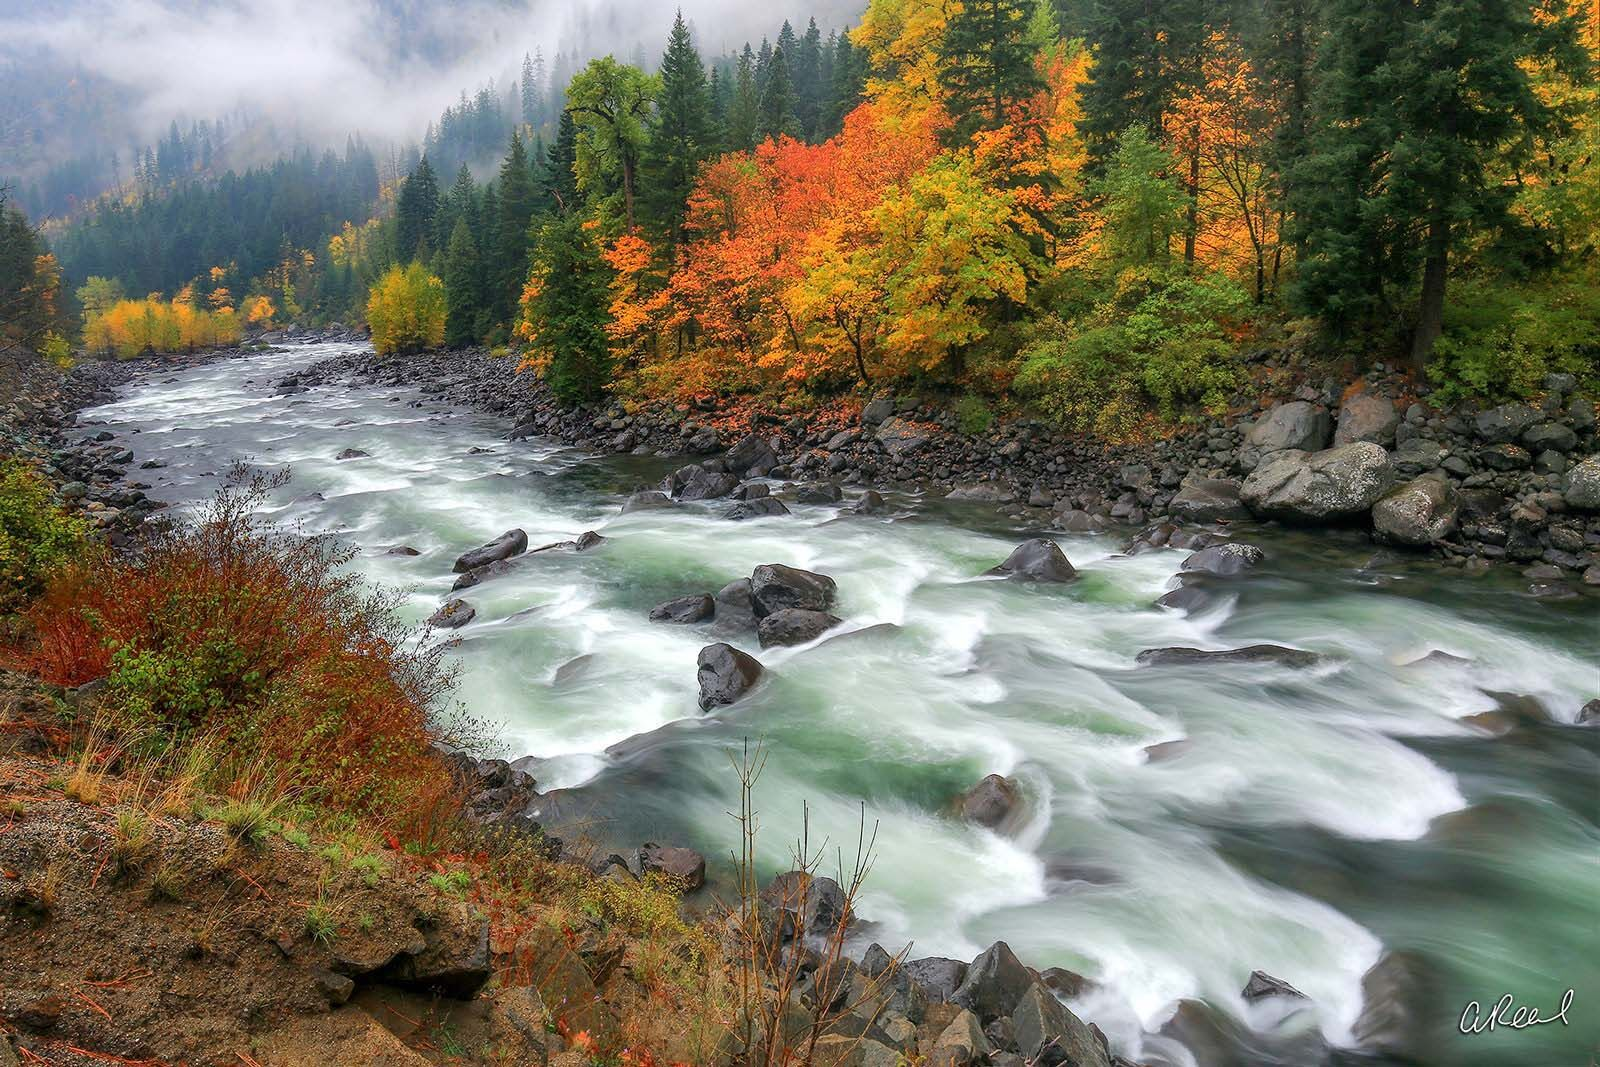 Fine Art Limited Edition of 50 - Water from the Wenatchee River and its tributaries has been diverted for irrigation since...